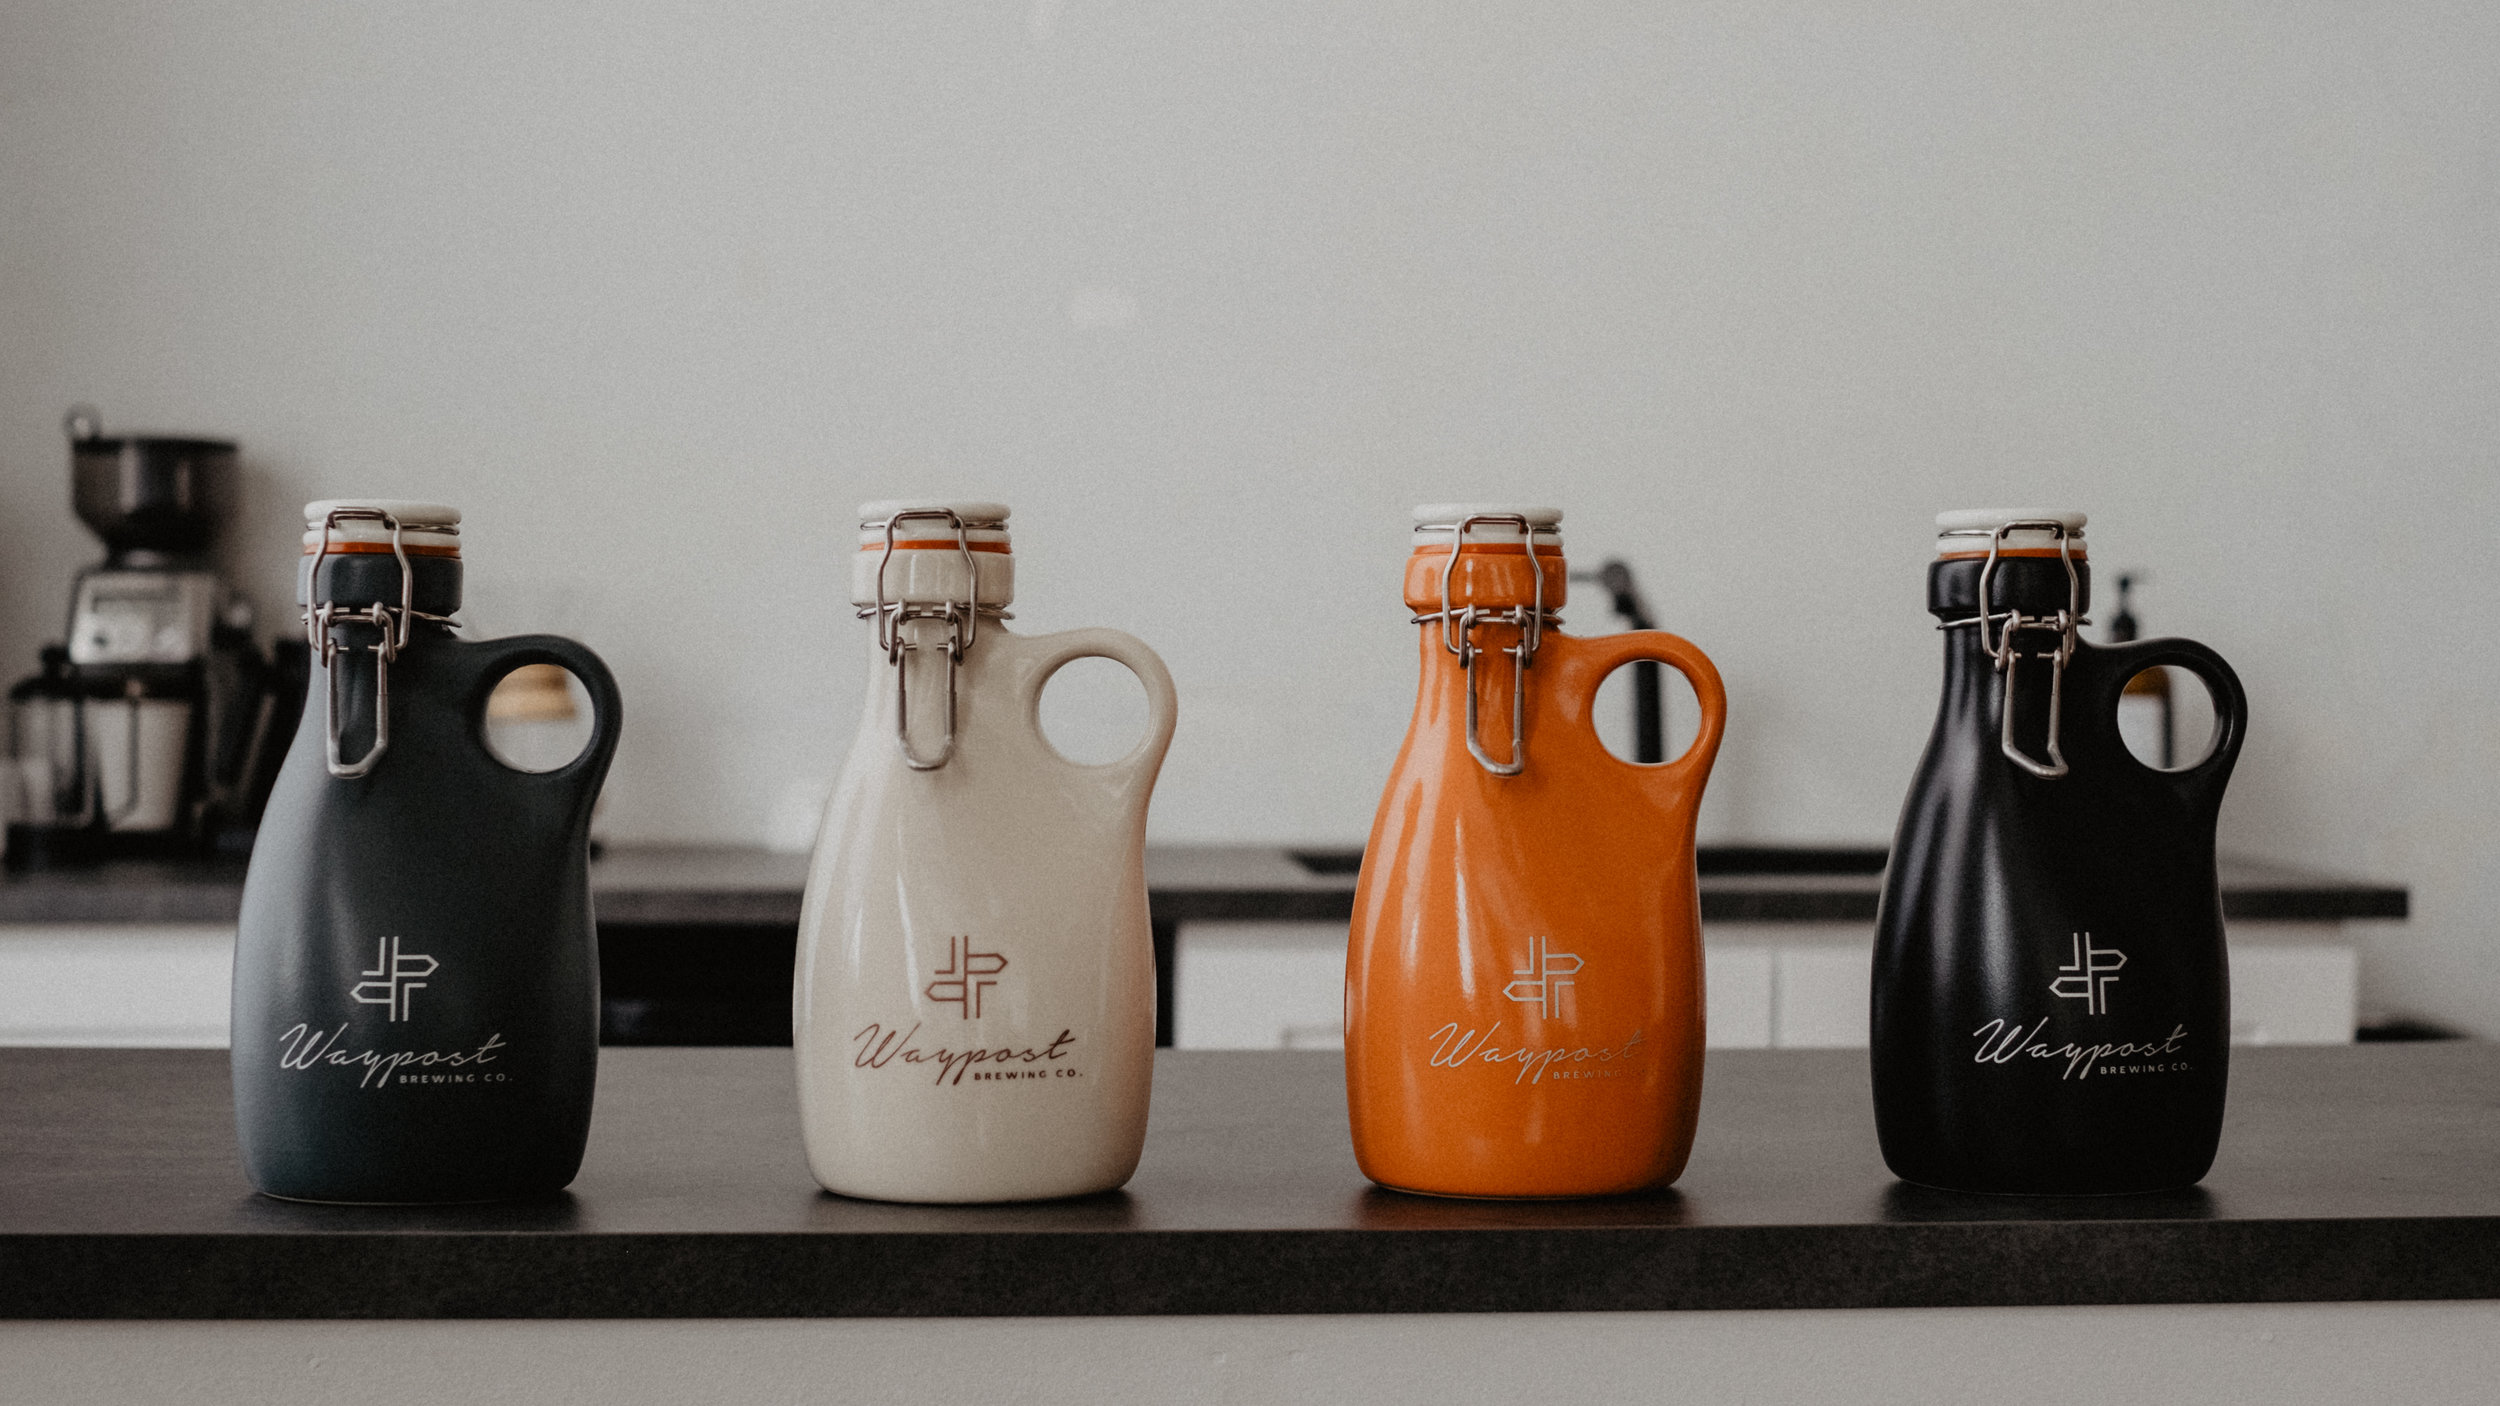 This is an impressive lineup of Orange Vessels.